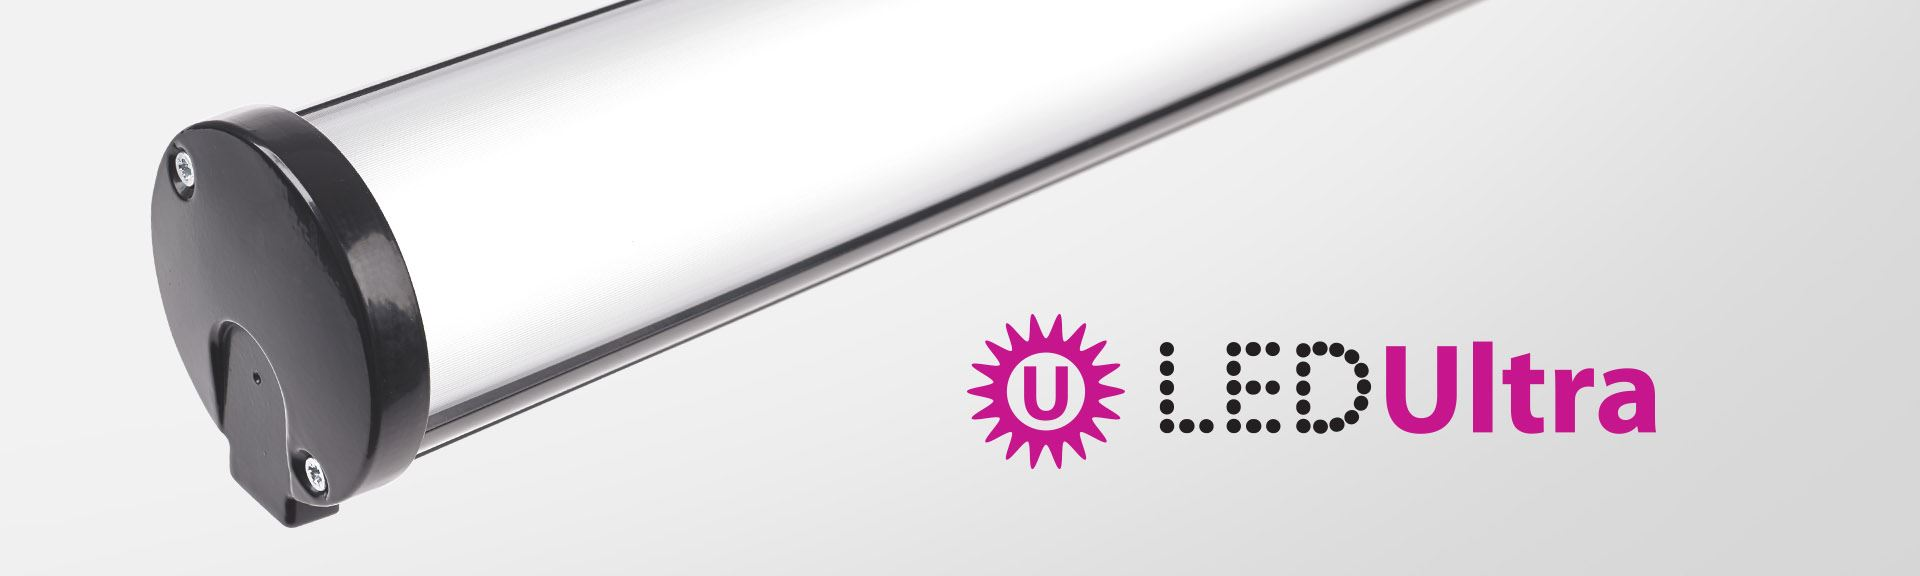 LED Ultra Troough Light Home Page Banner